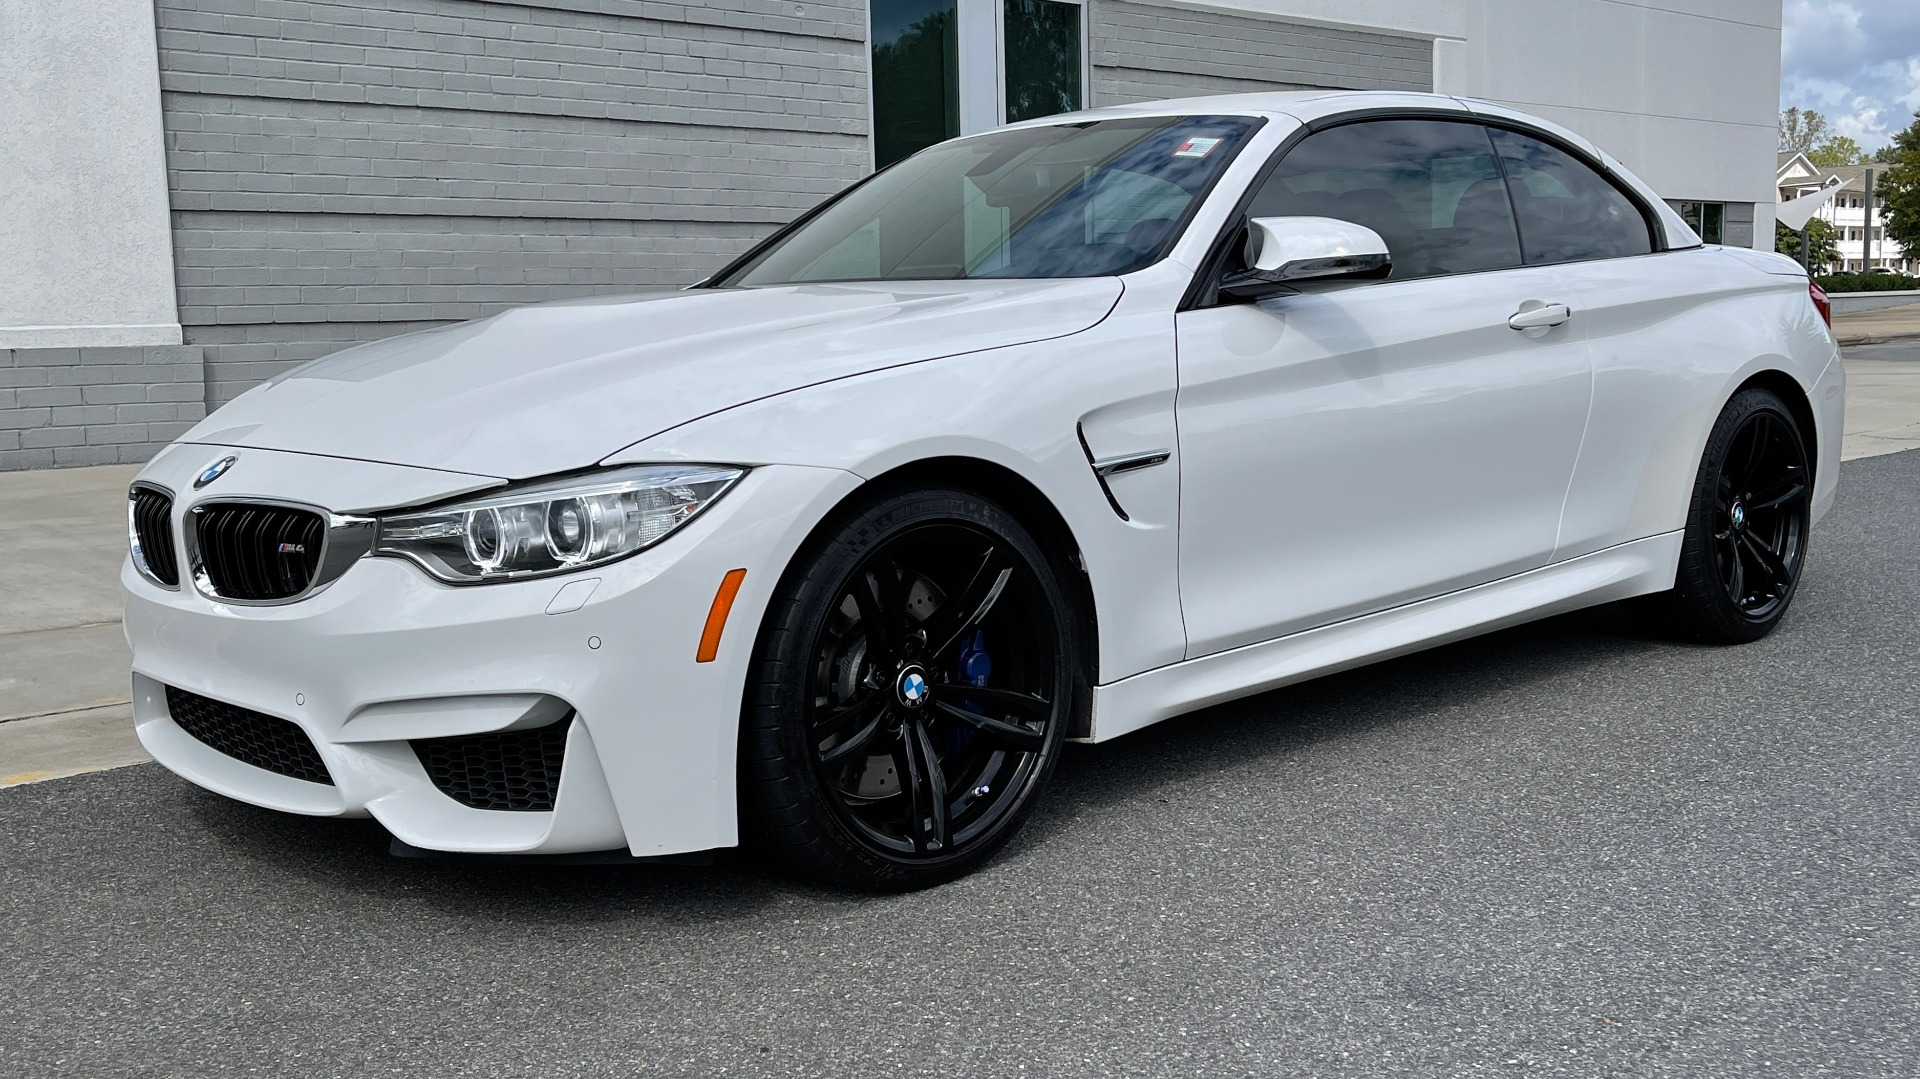 Used 2016 BMW M4 CONVERTIBLE 3.0L / 7-SPD AUTO / EXECUTIVE / ADAPT M SUSP / REARVIEW for sale $53,999 at Formula Imports in Charlotte NC 28227 8